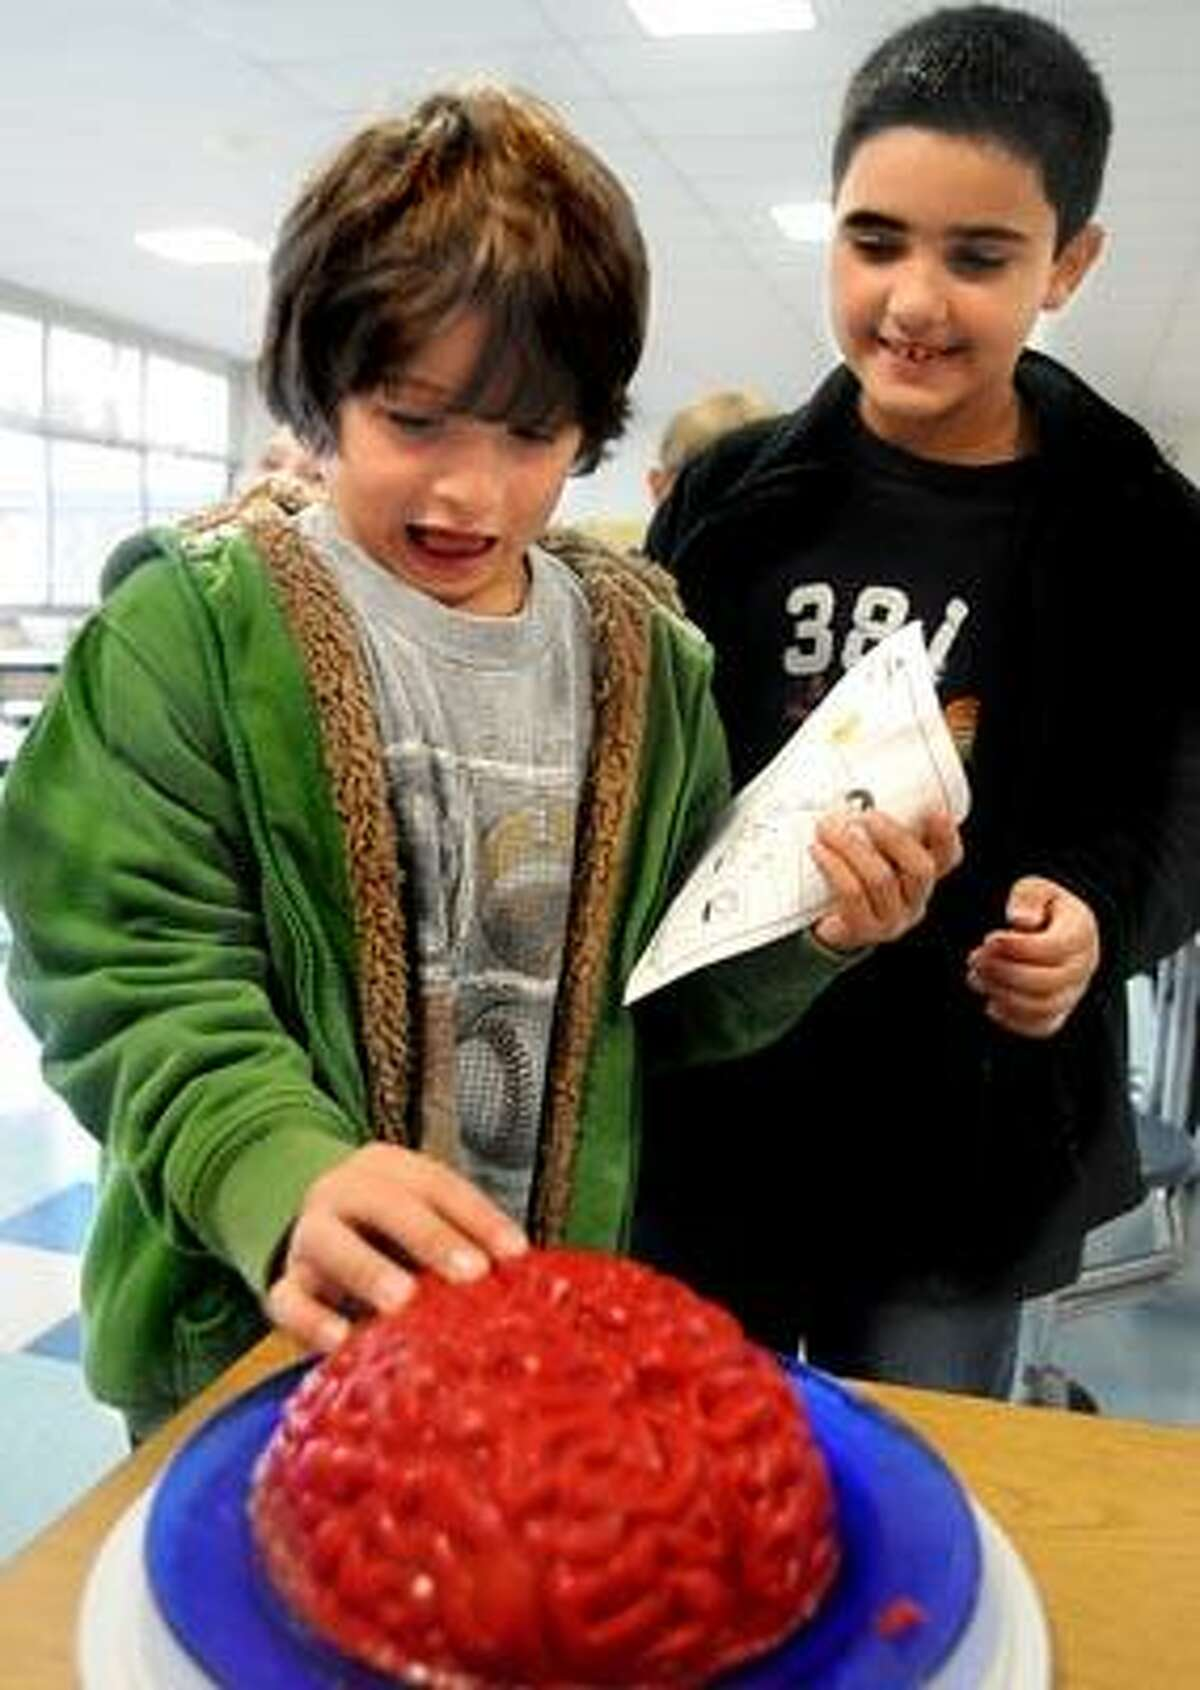 (ms101610)-a 2nd grader at Green Acres Elemenrary School in North Haven, touches a jello replica of a human brain during the school's